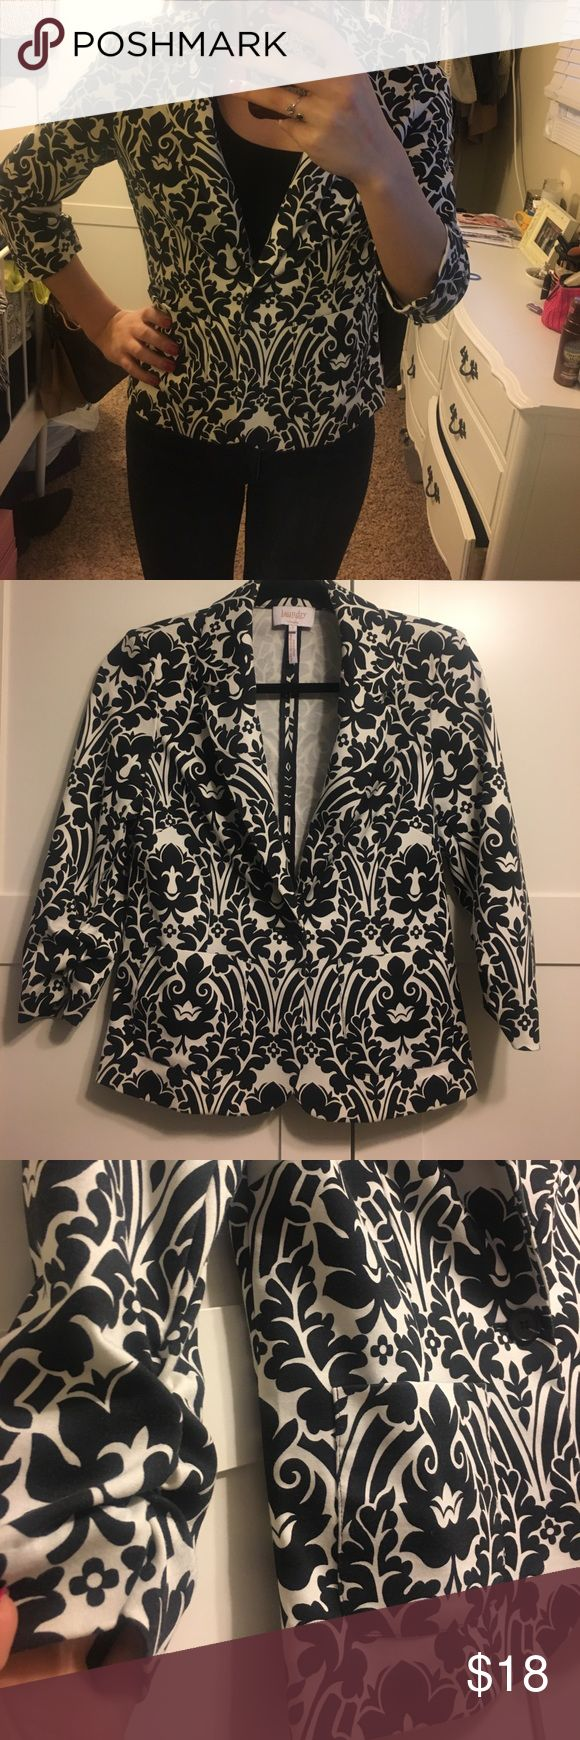 Black & white patterned Blazer Really cool patterned Blazer, purchased from Nordstrom rack very lightly worn, fits loose on me in picture. Material is super soft, not like a traditional suit jacket. Three quarter sleeves & very light weight Laundry by Shelli Segal Jackets & Coats Blazers